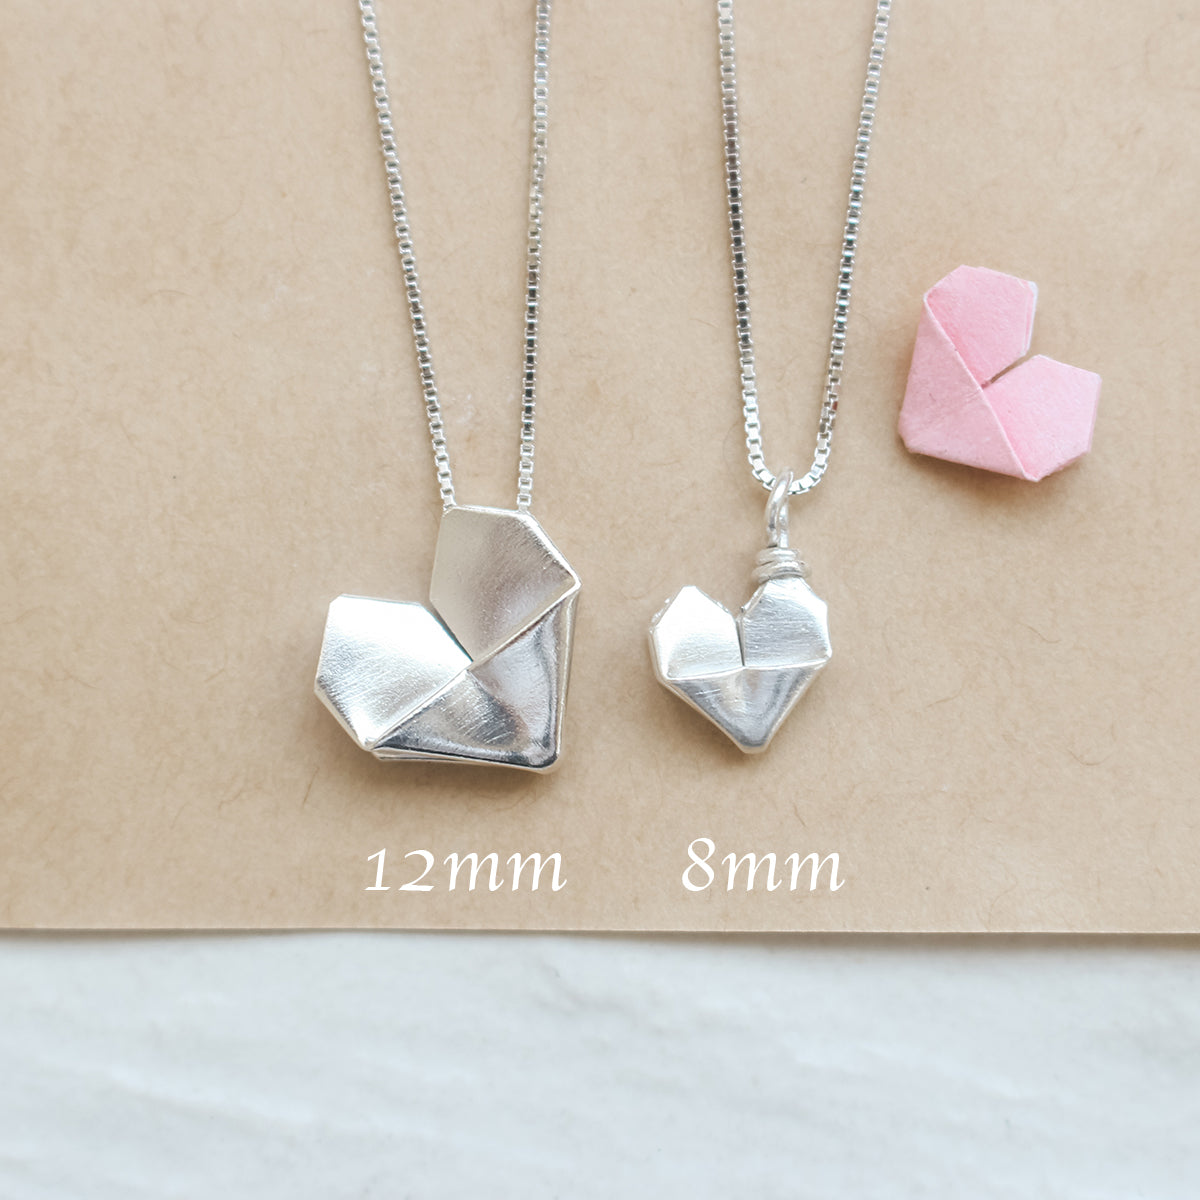 Origami Silver Heart Necklace / Sterling Silver Paper Heart Necklace / Folding Heart Necklace